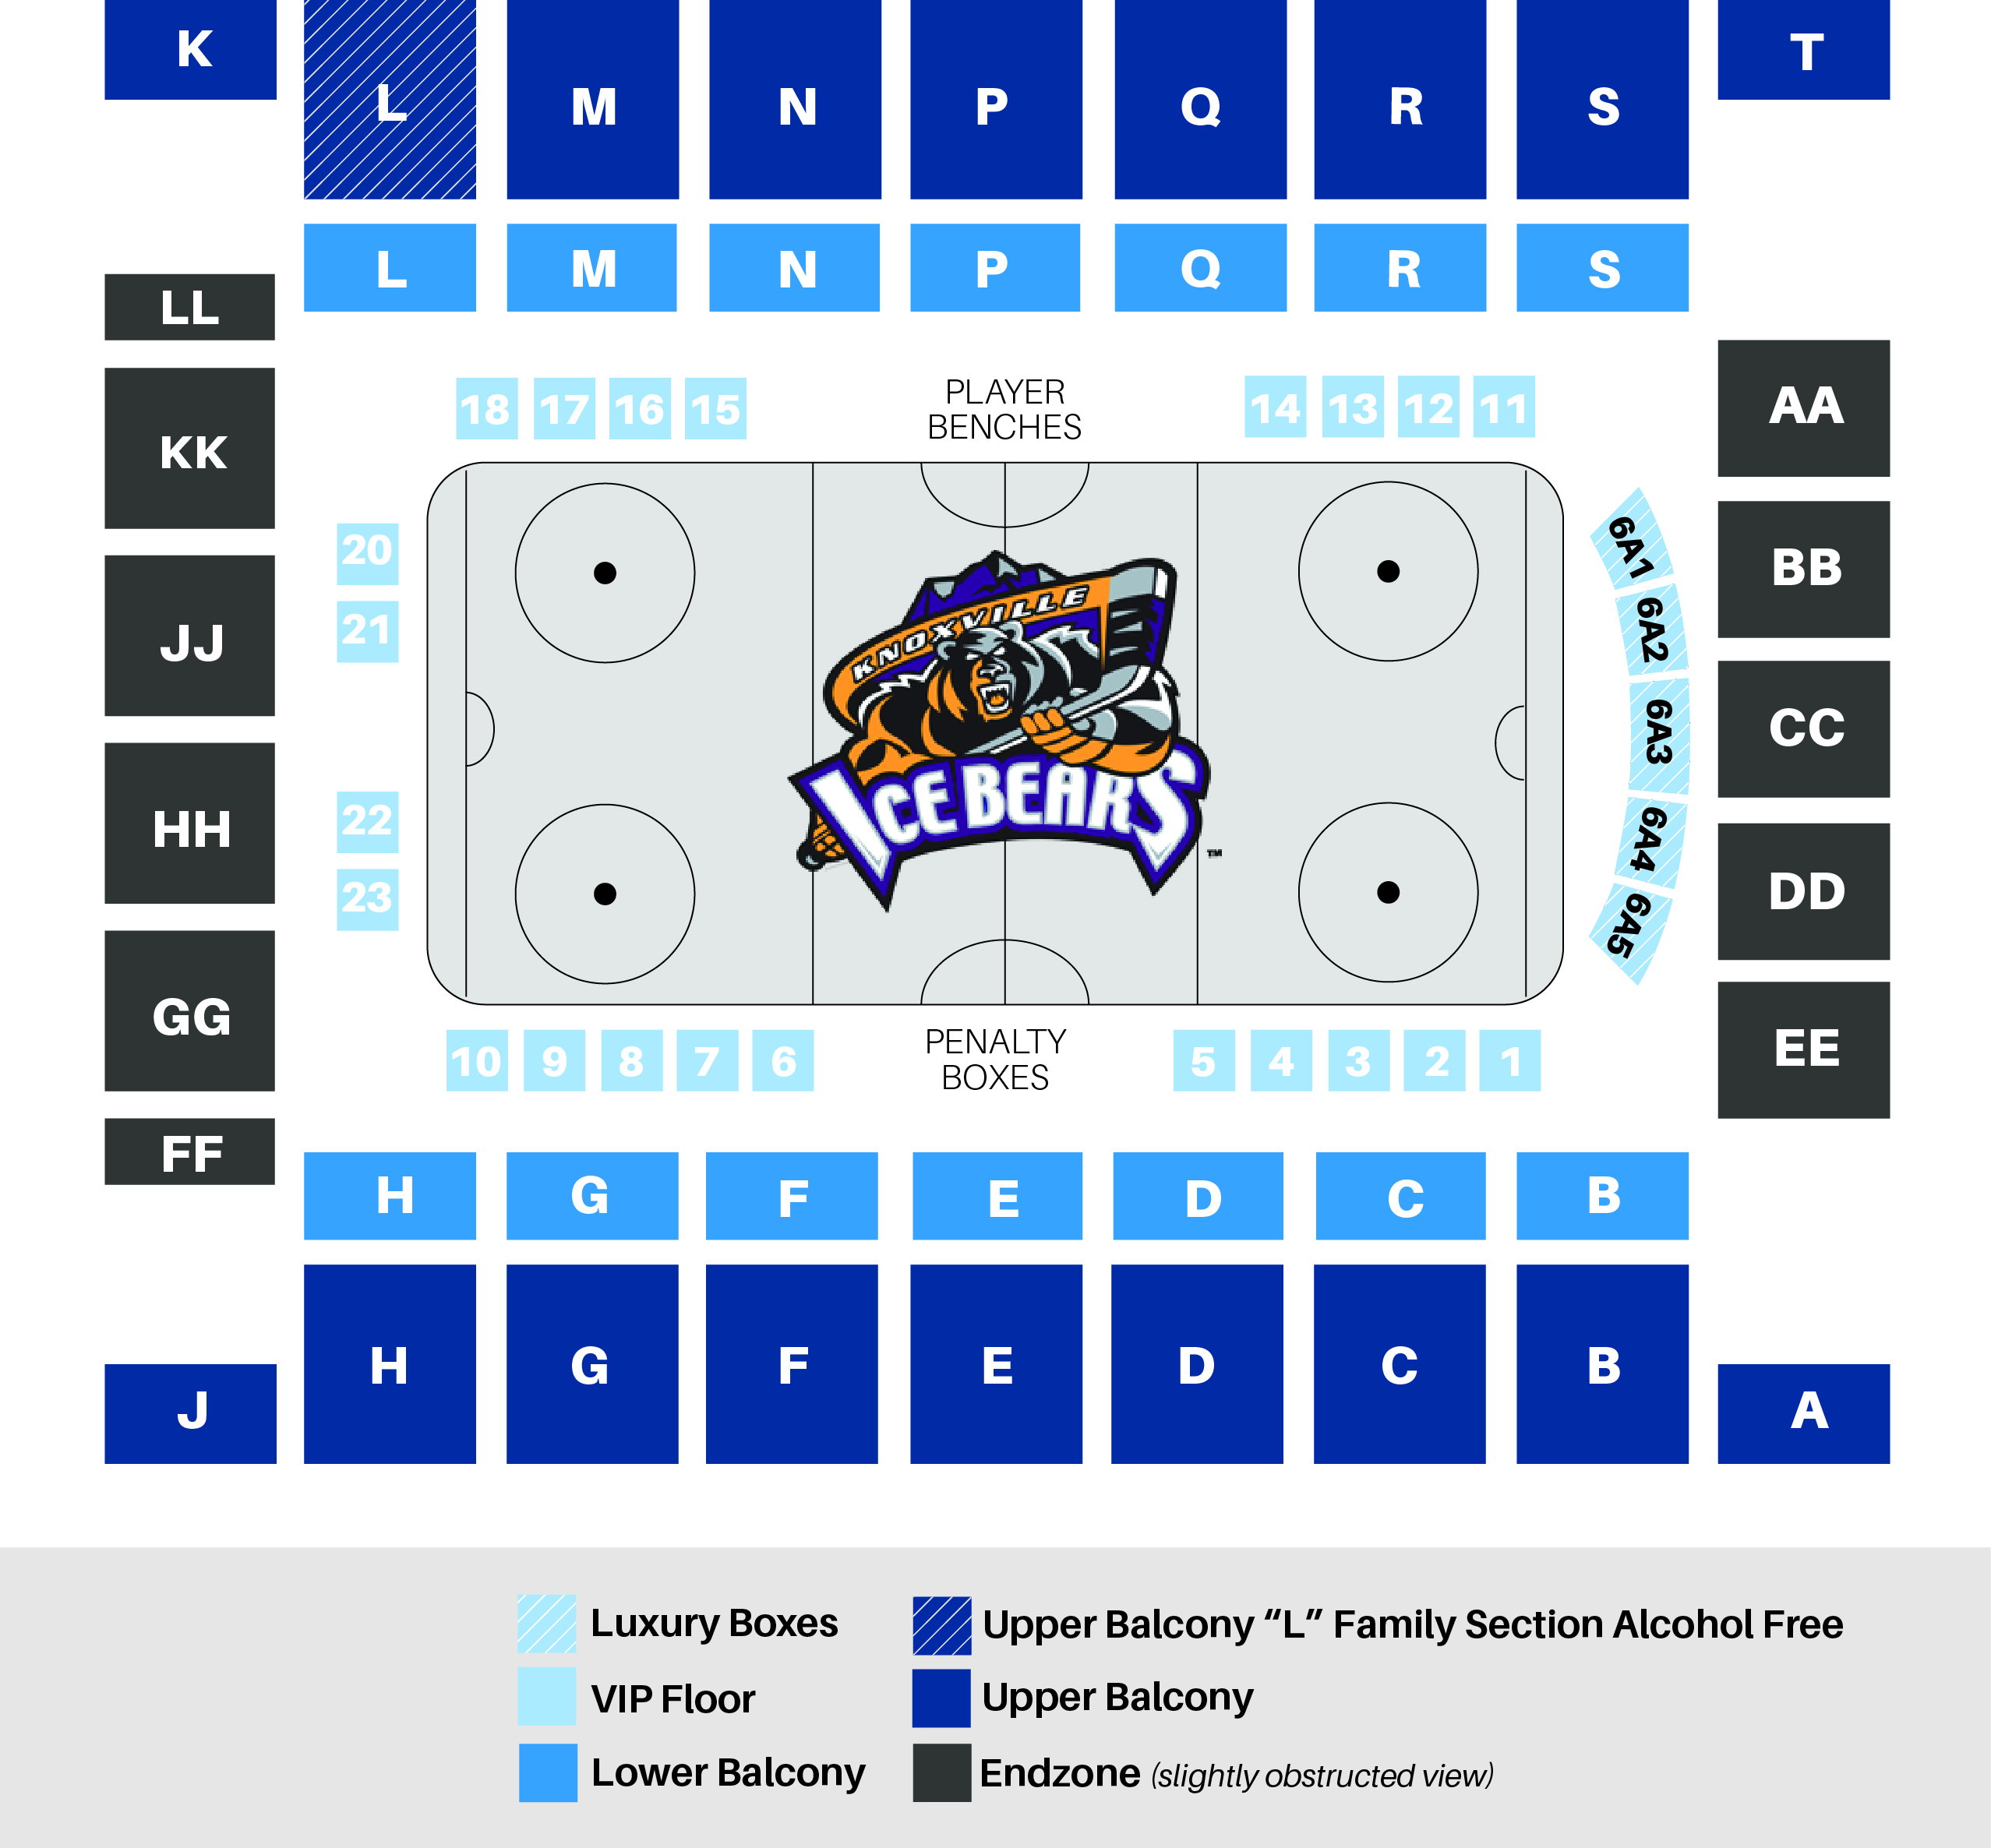 Knoxville Civic Coliseum Ice Bears Hockey Games NEW